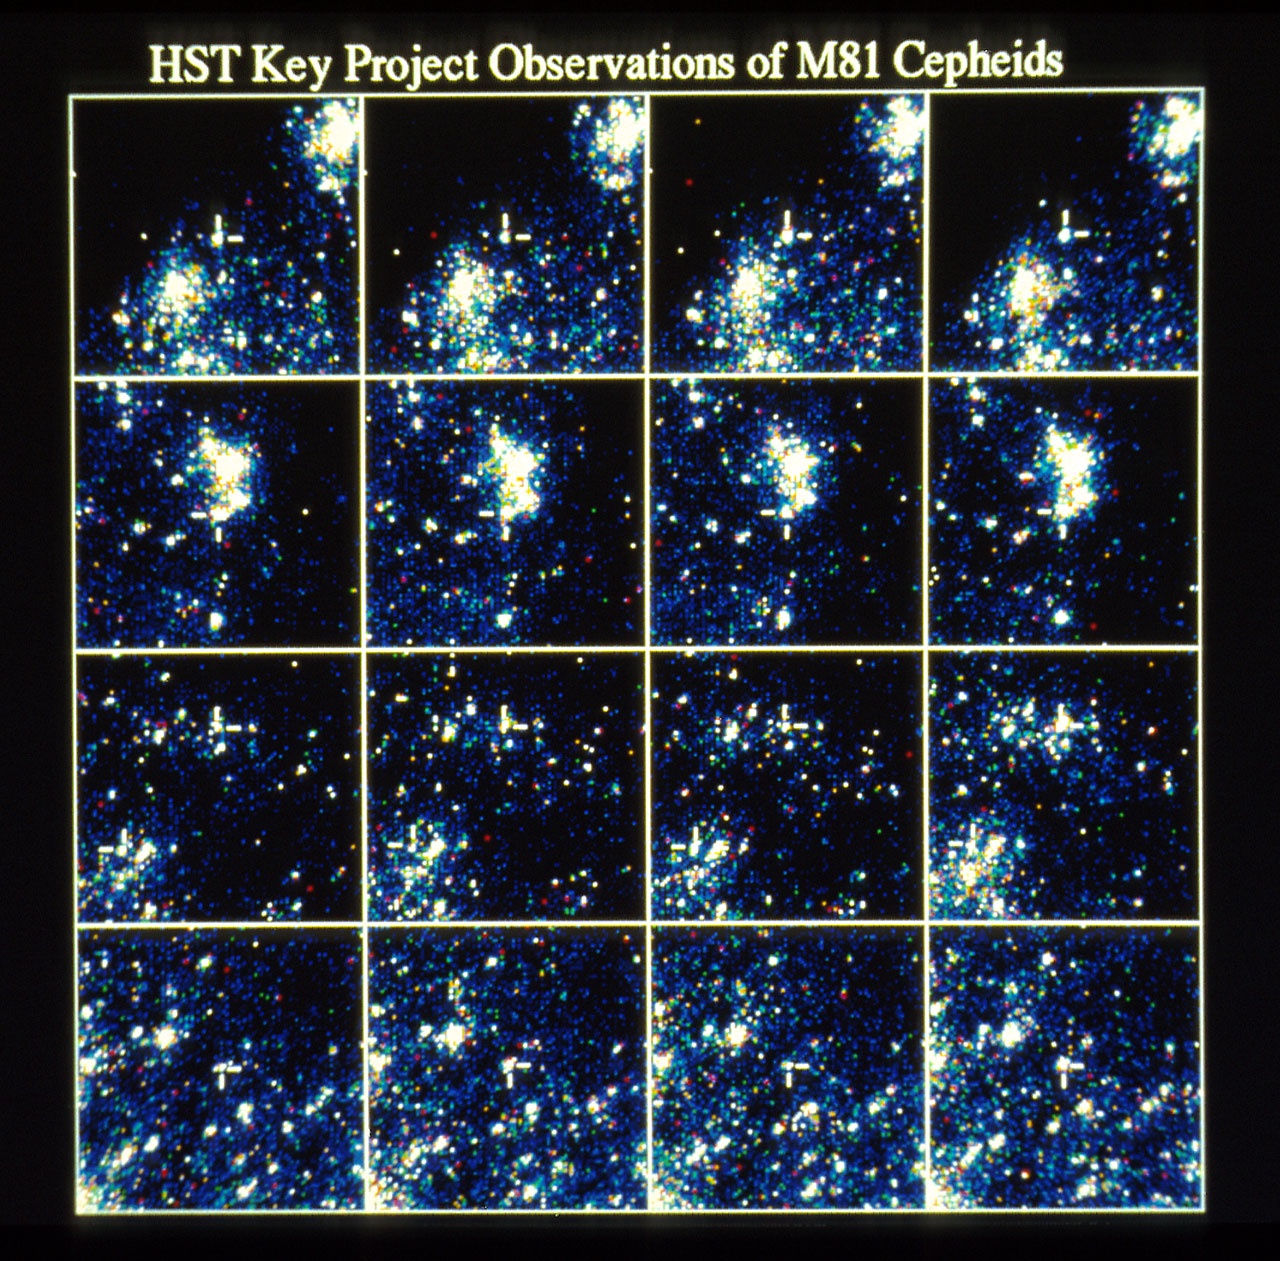 HST Key Project Observation of M81 Cepheids